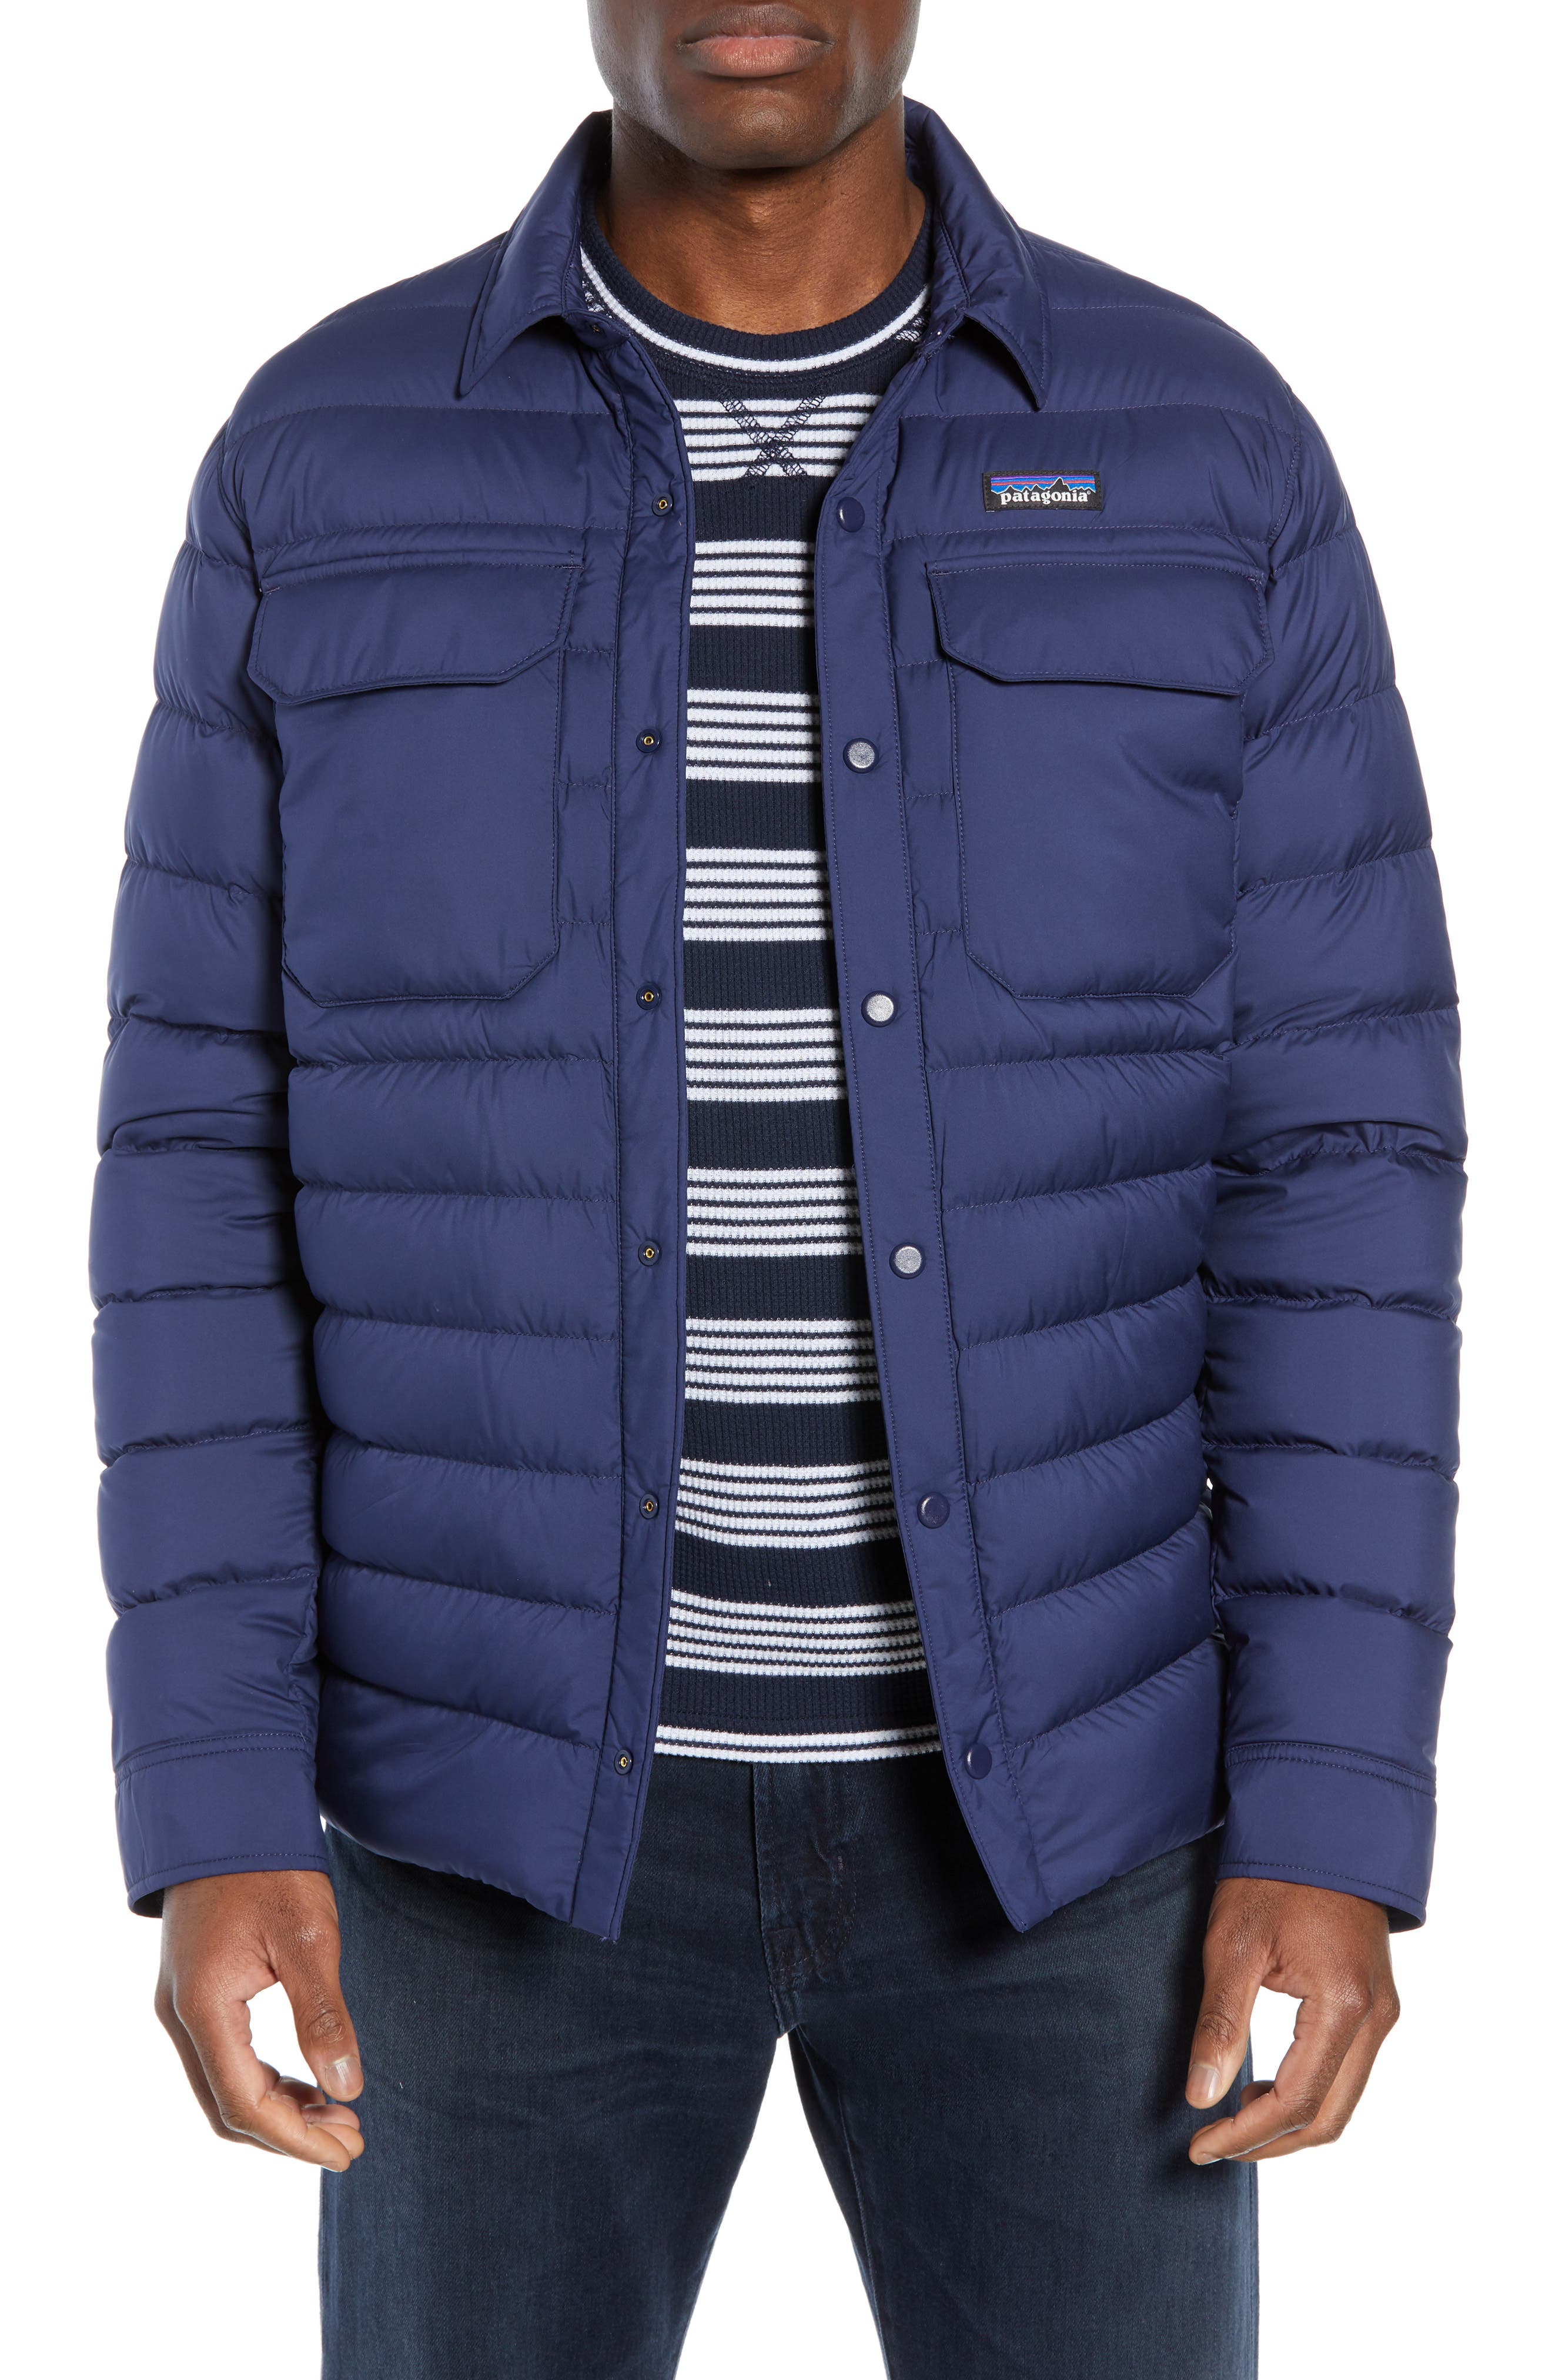 Patagonia Silent Water Repellent 700-Fill Power Down Shirt Jacket, Blue